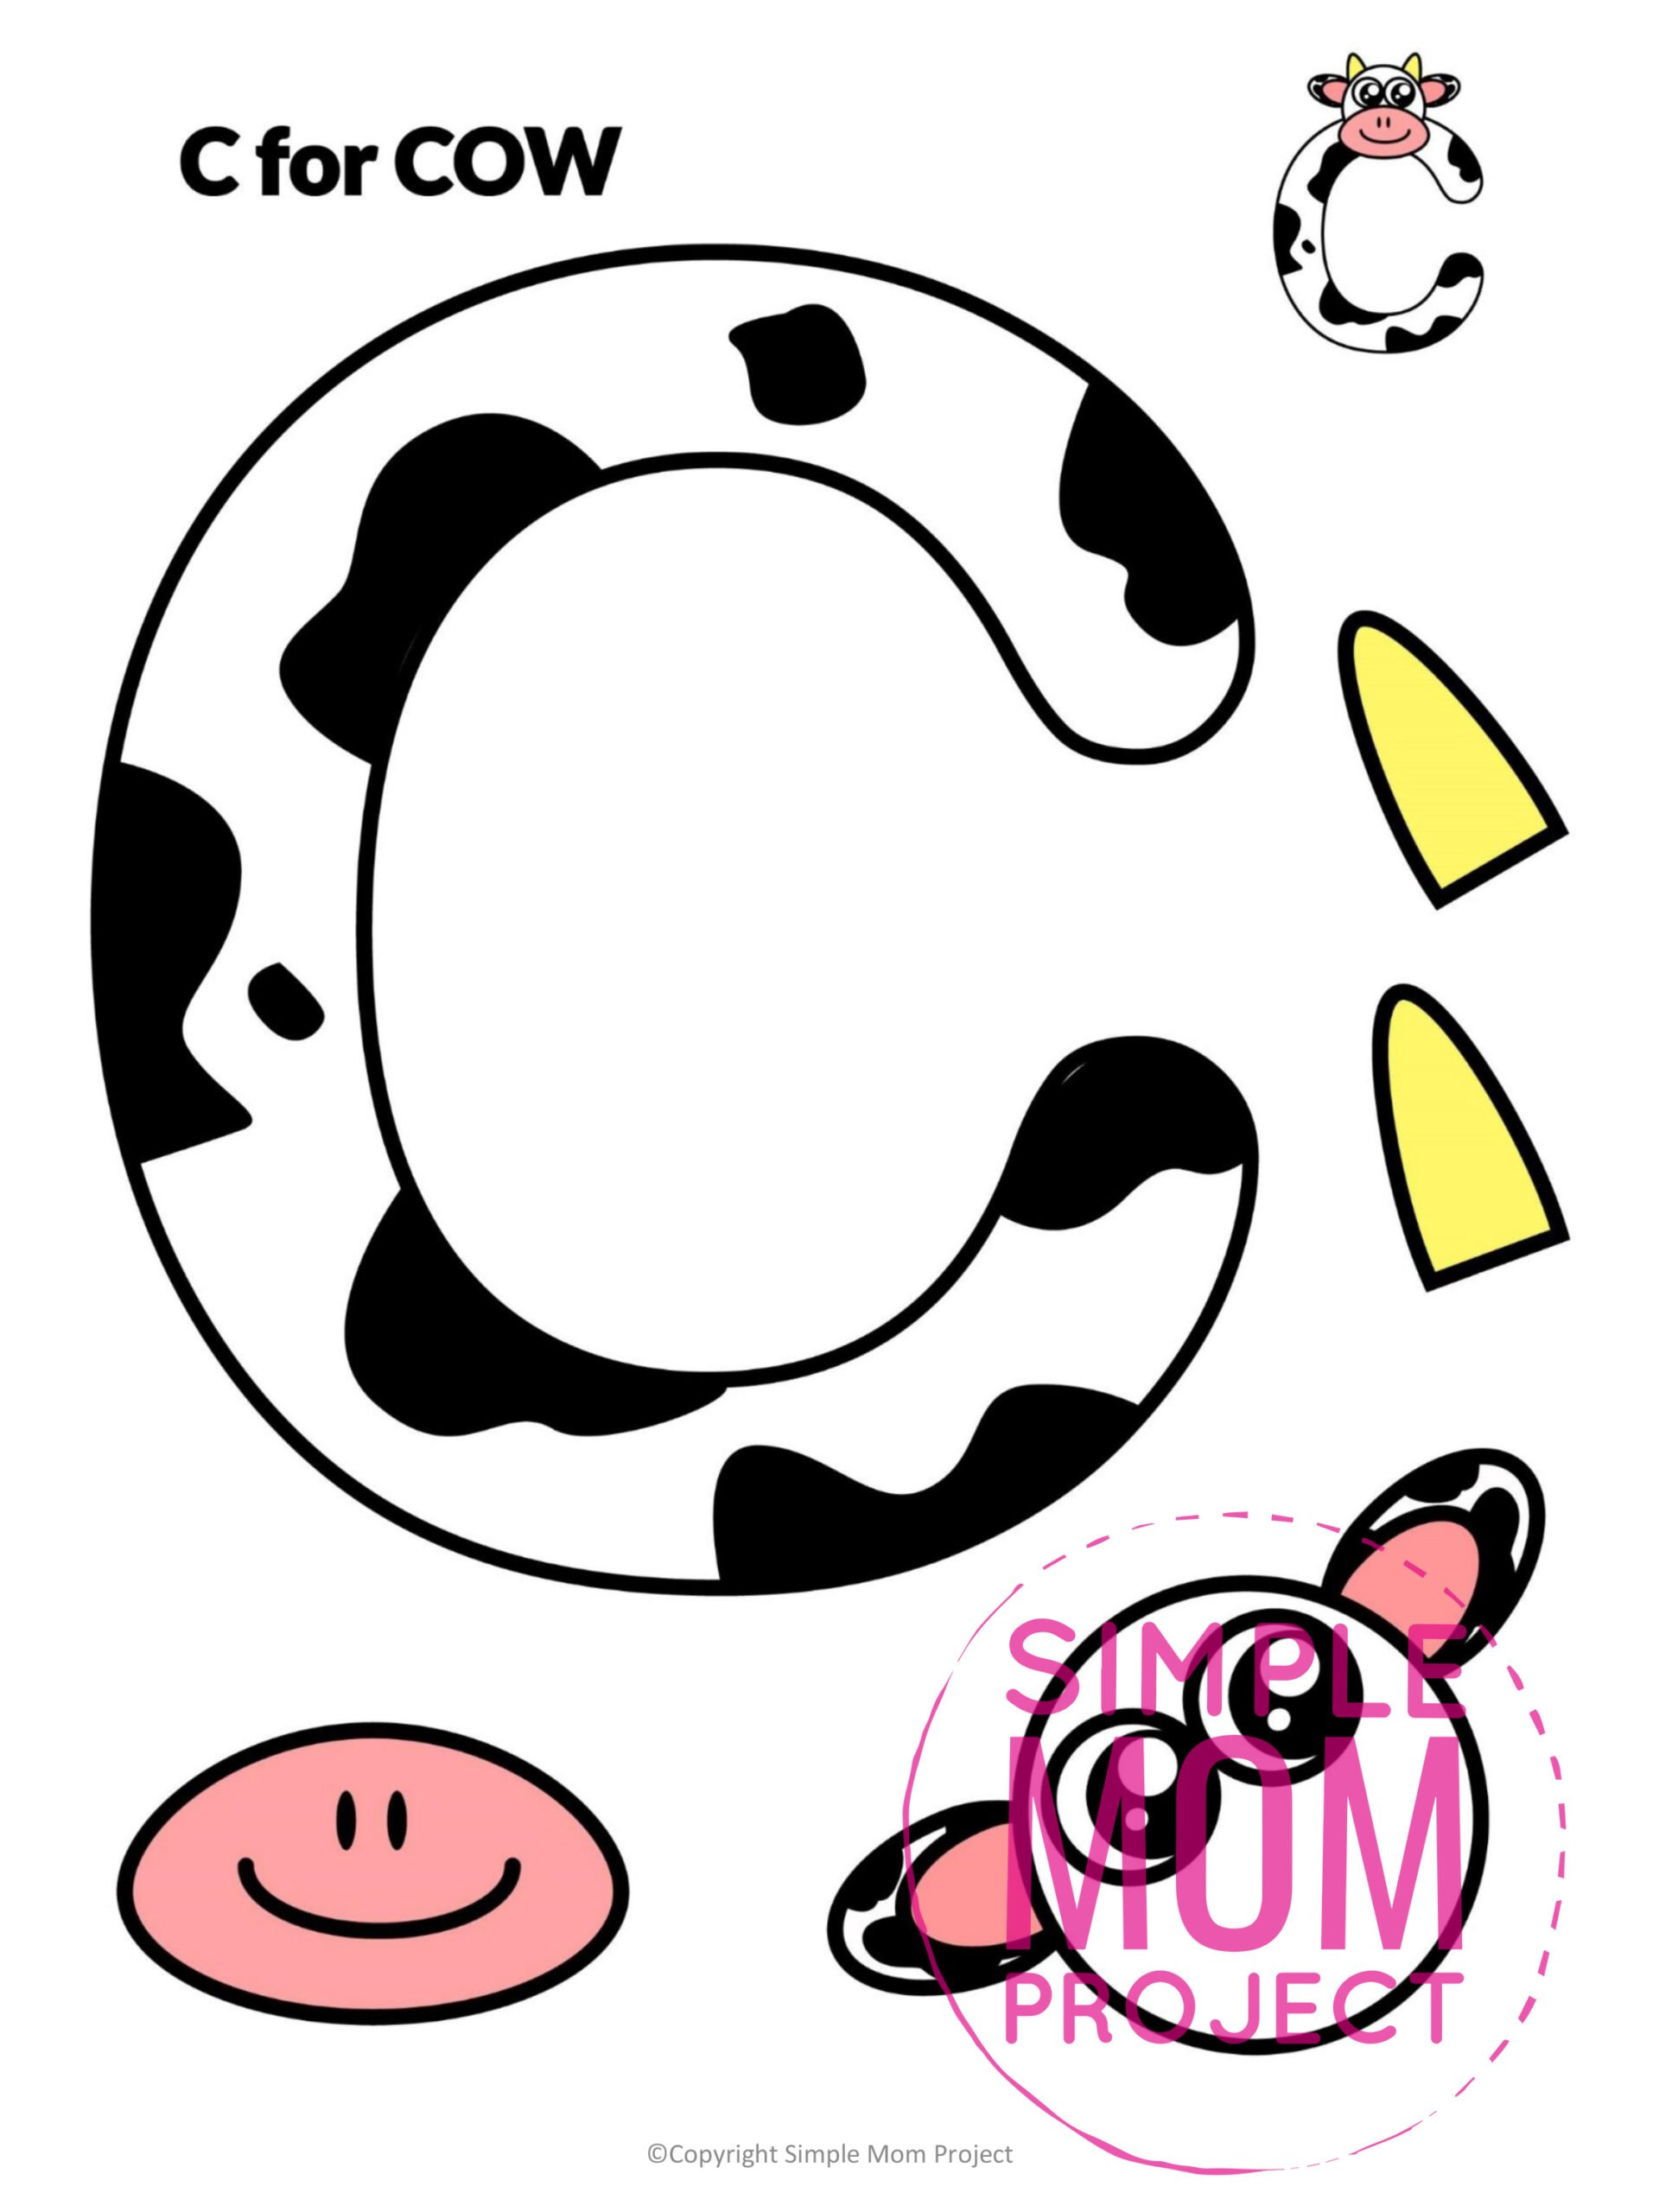 C is for Cow Free Printable Craft Cow Letter C Craft for Kids, preschoolers, toddlers and kindergartners